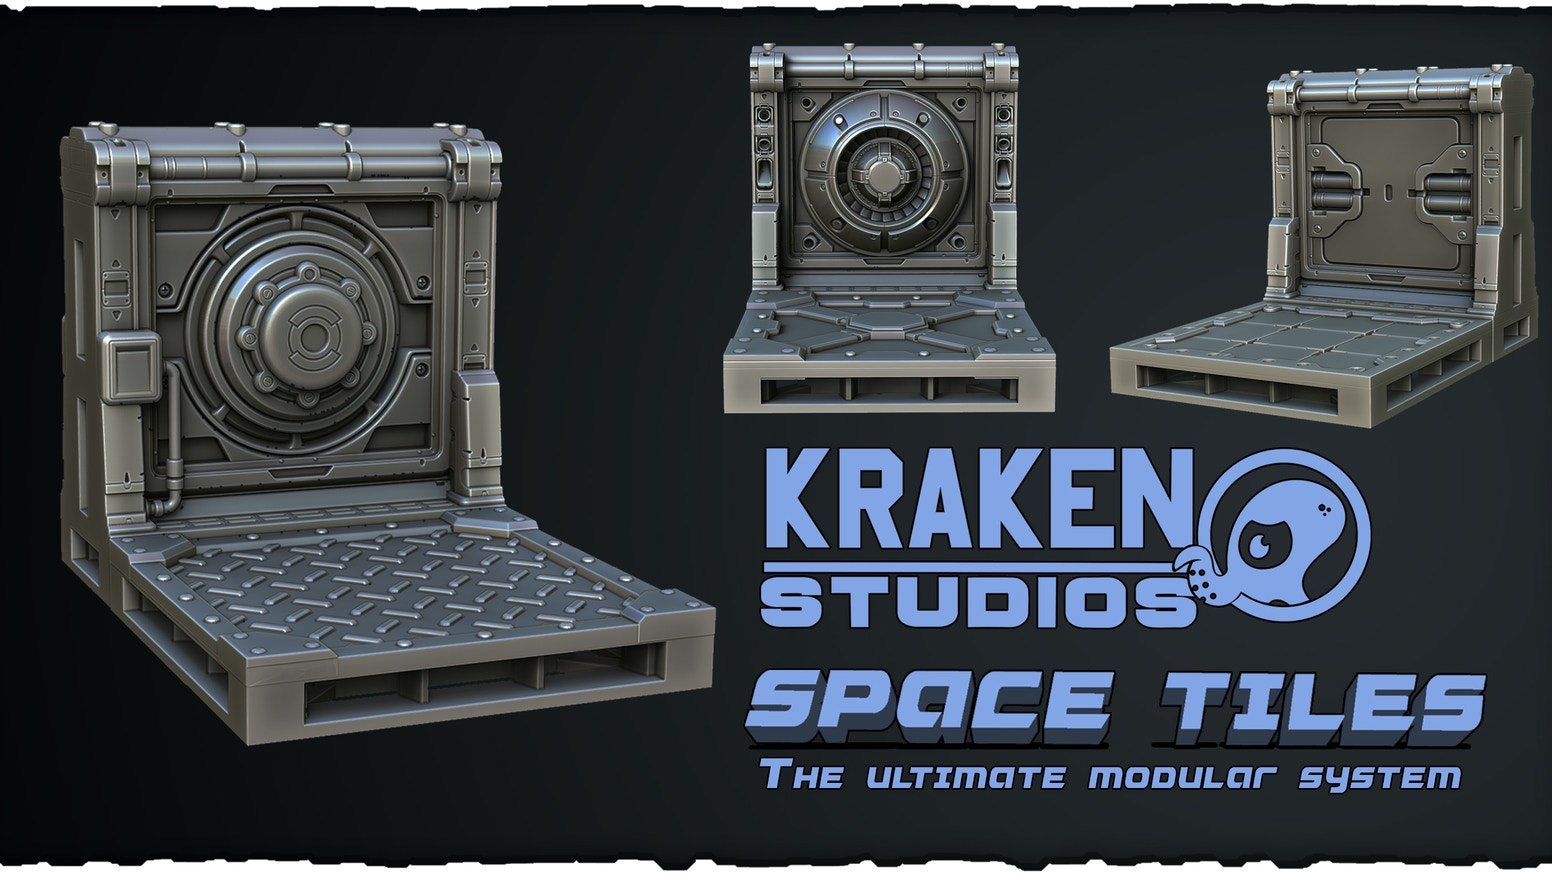 Kraken Space tiles is a Printable modular system for tabletop games,board games and wargames,3D print terrain, Printable scenery,sci-fi